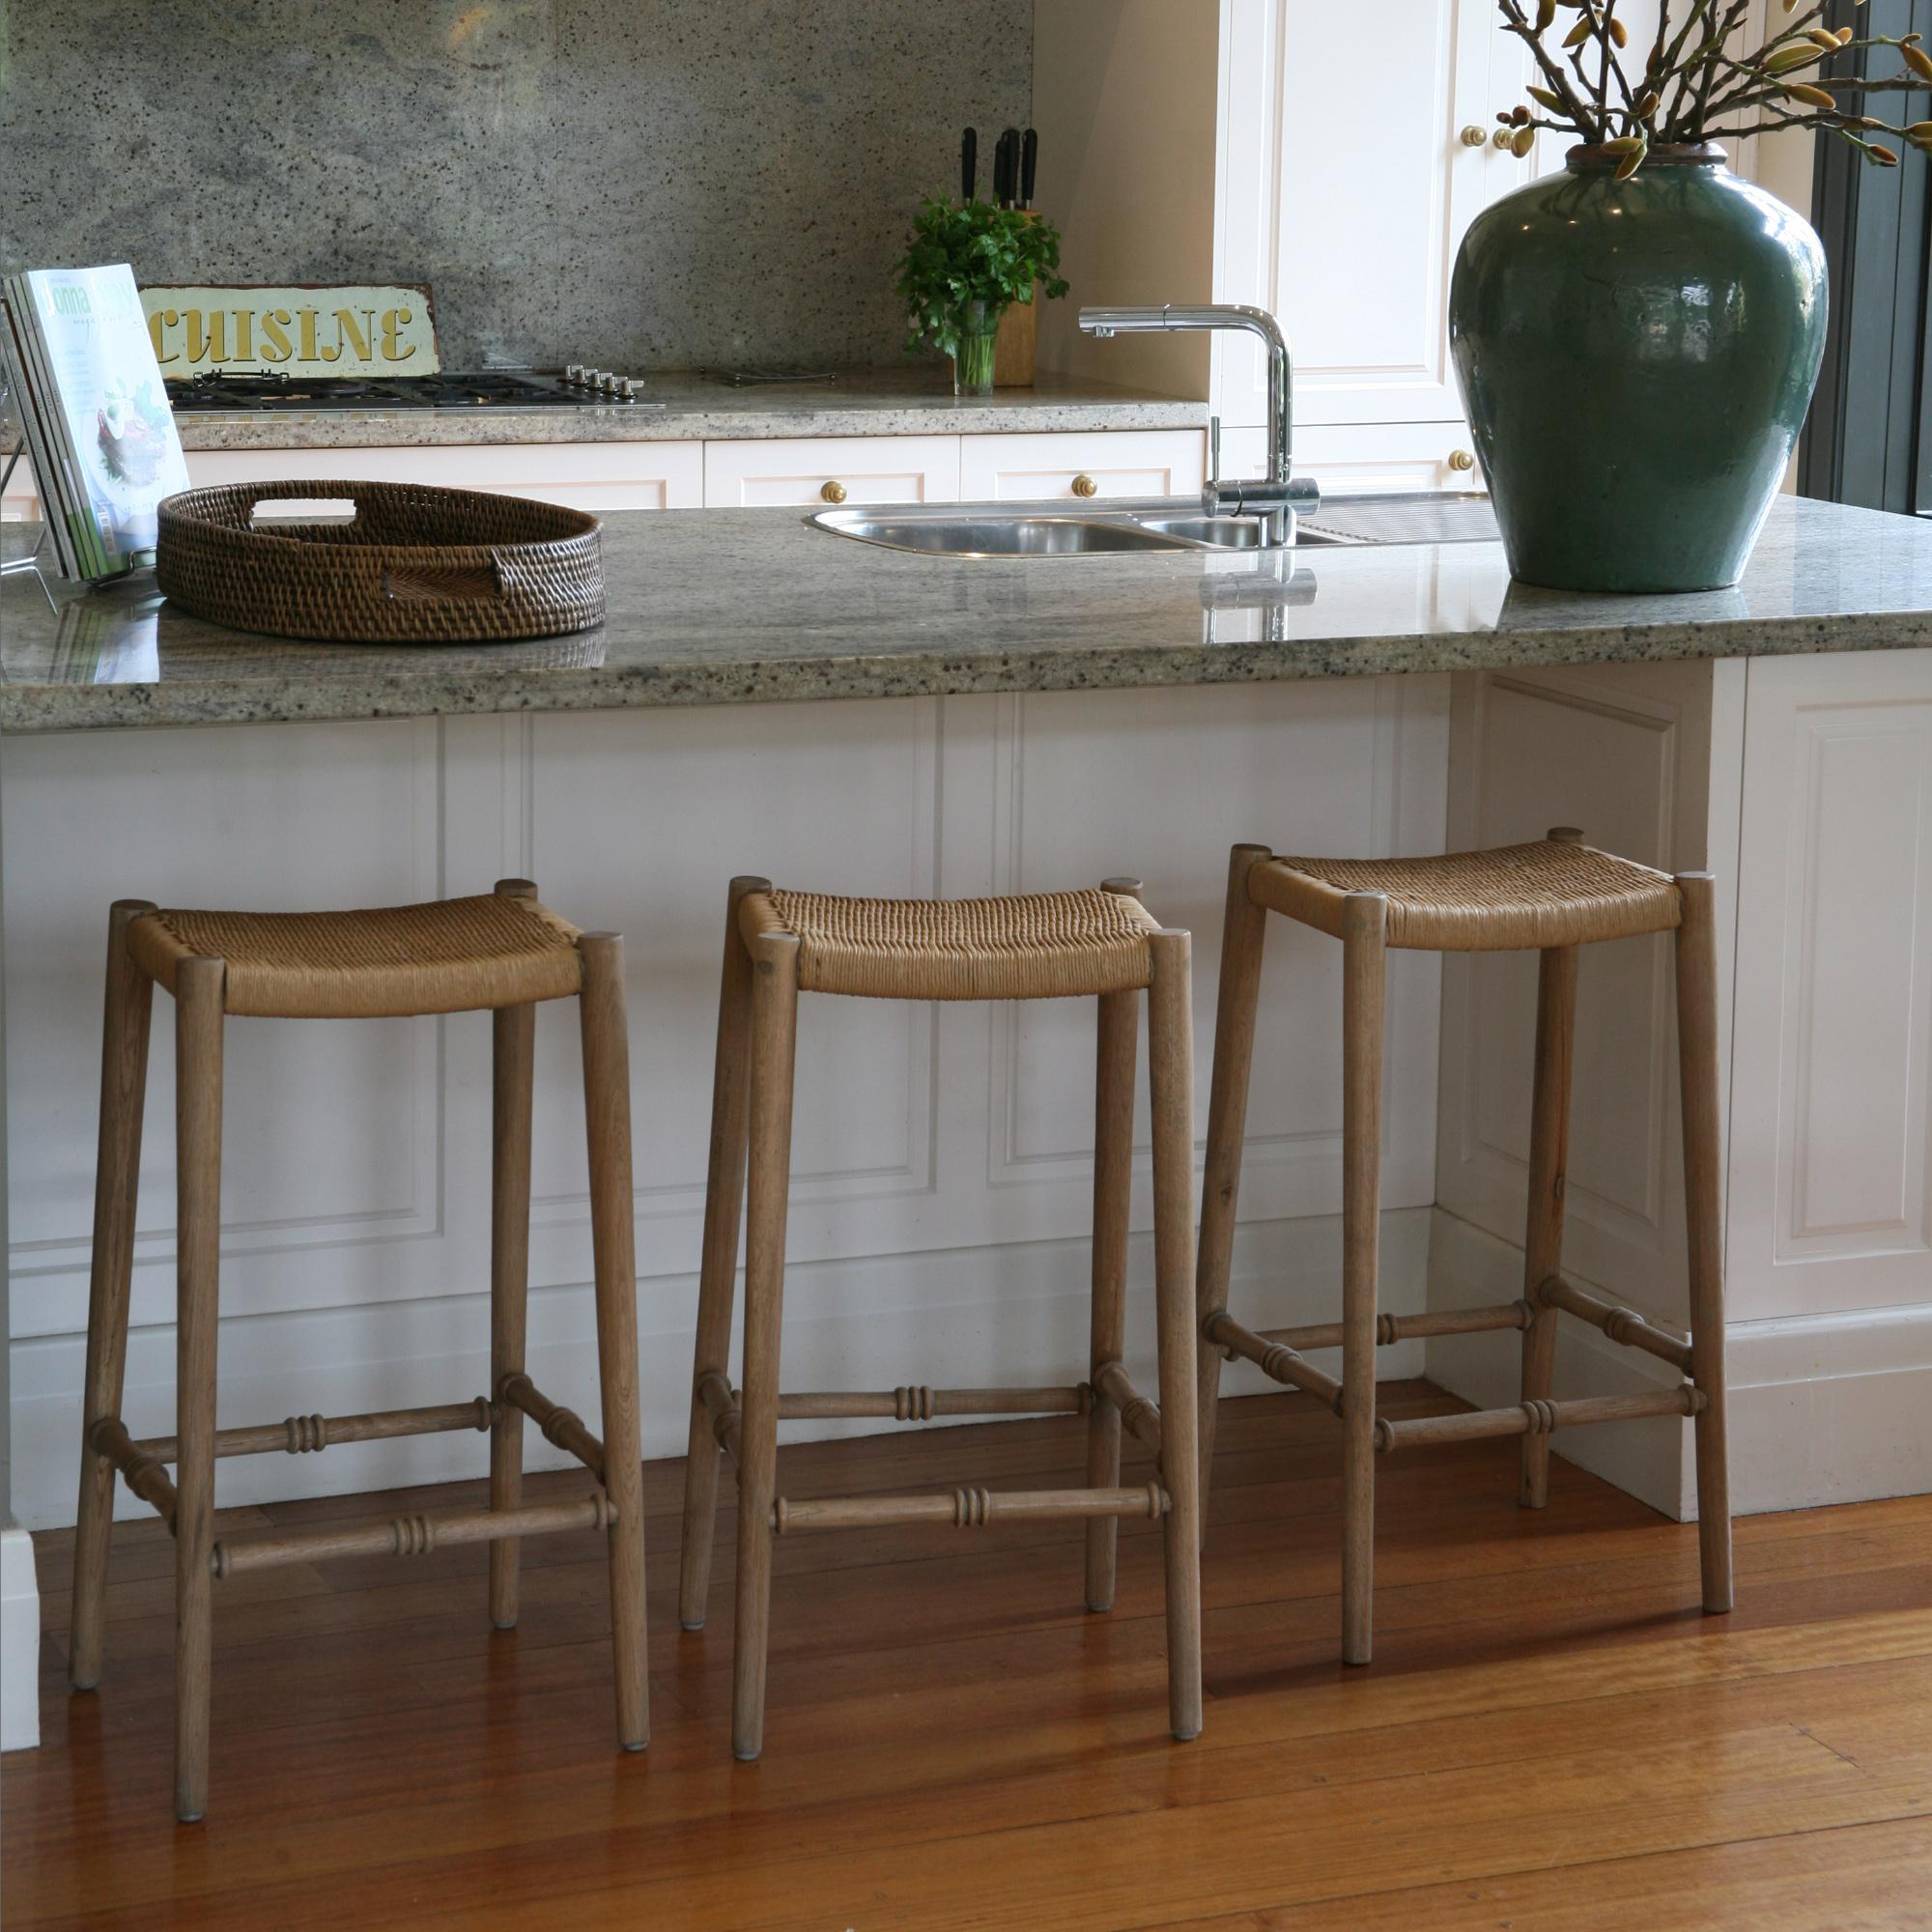 wicker-kitchen-stools